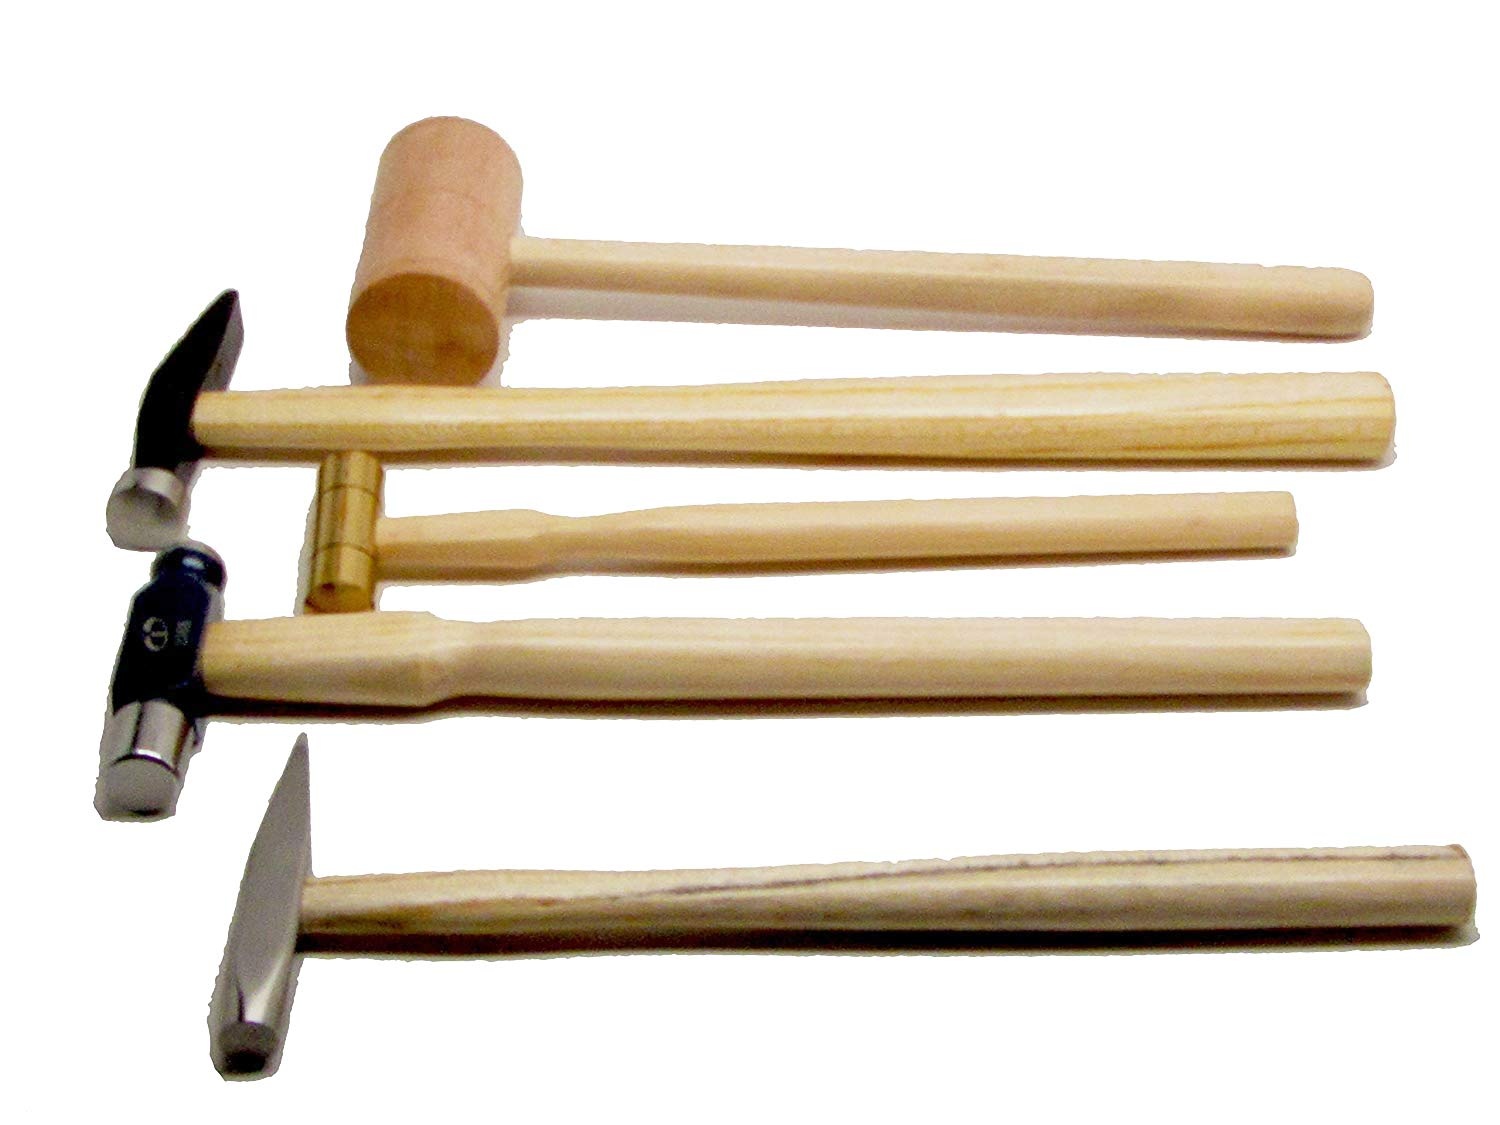 5 Piece Jewelers Hammer Set, Professional Kit Including 2 Oz Ball Peen, 9 Oz Goldsmith, 2 Oz Brass, Rivet, and 3 Oz Wooden Mallet by UJ Ramelson Co